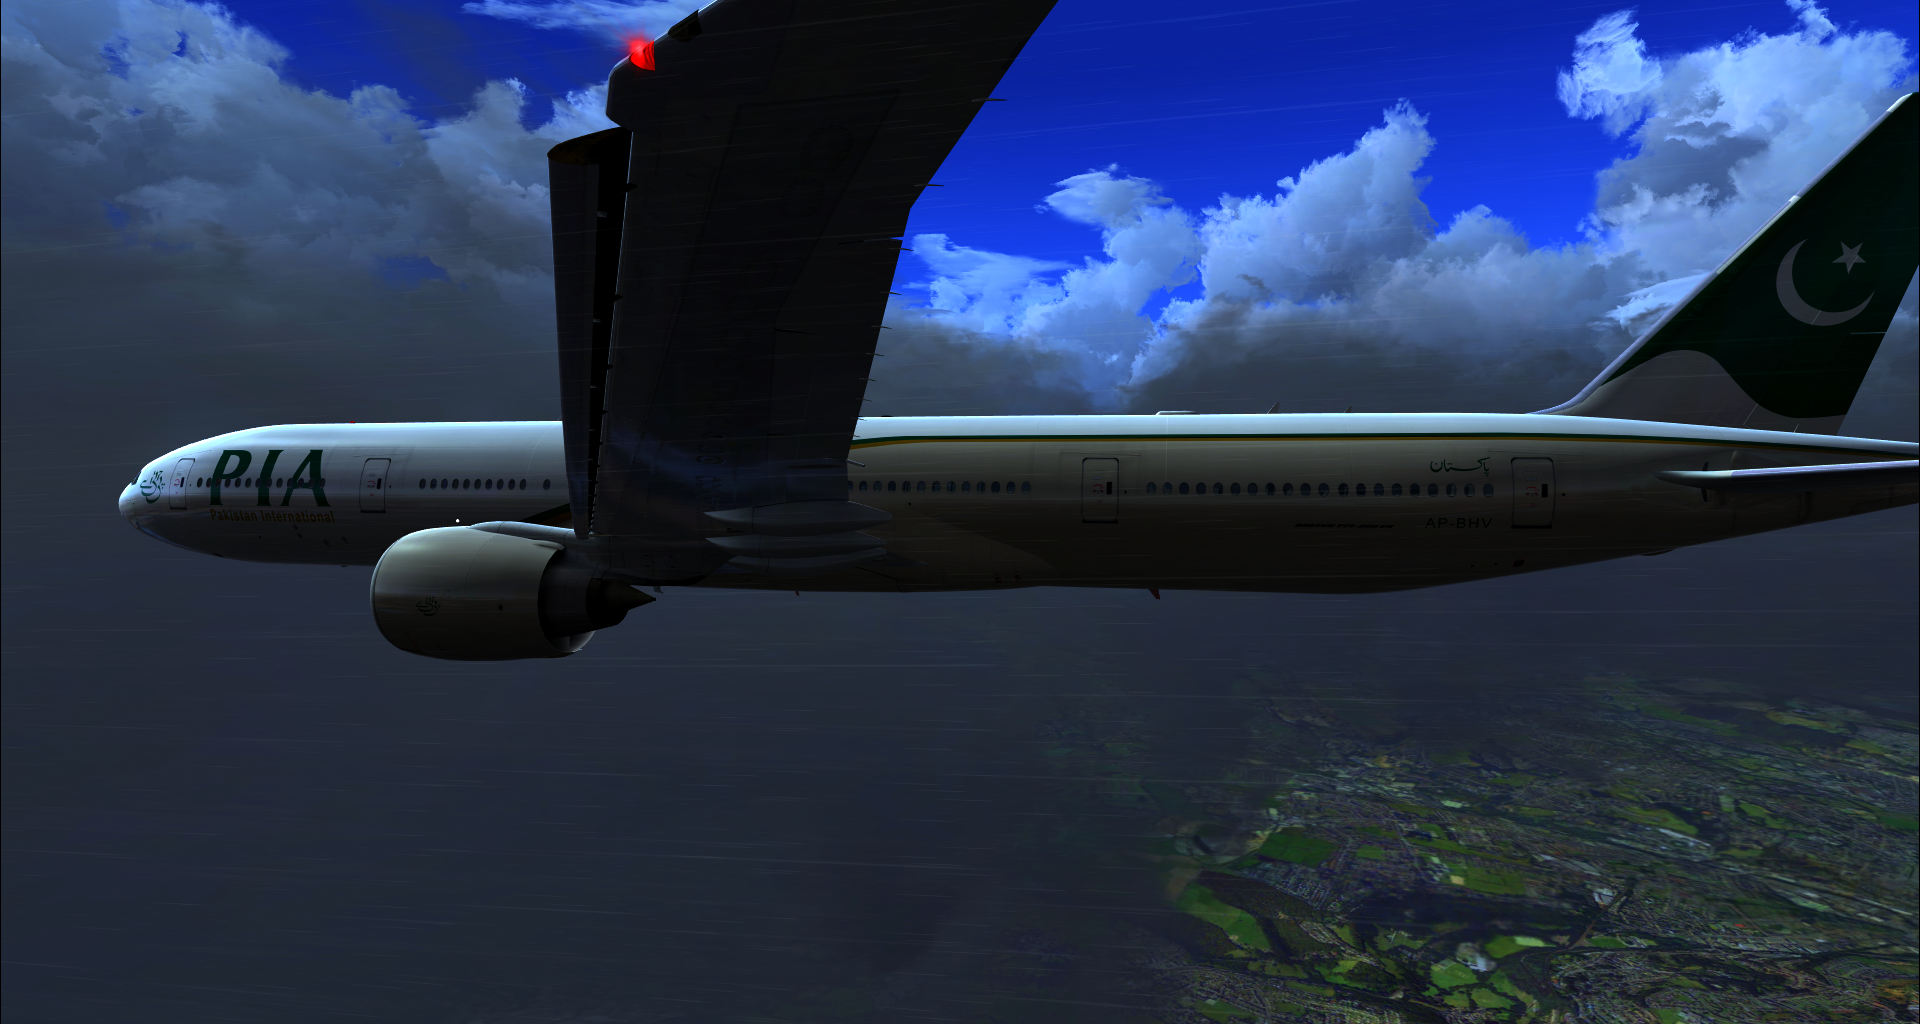 fsx%202014-08-06%2014-34-10-19a.png